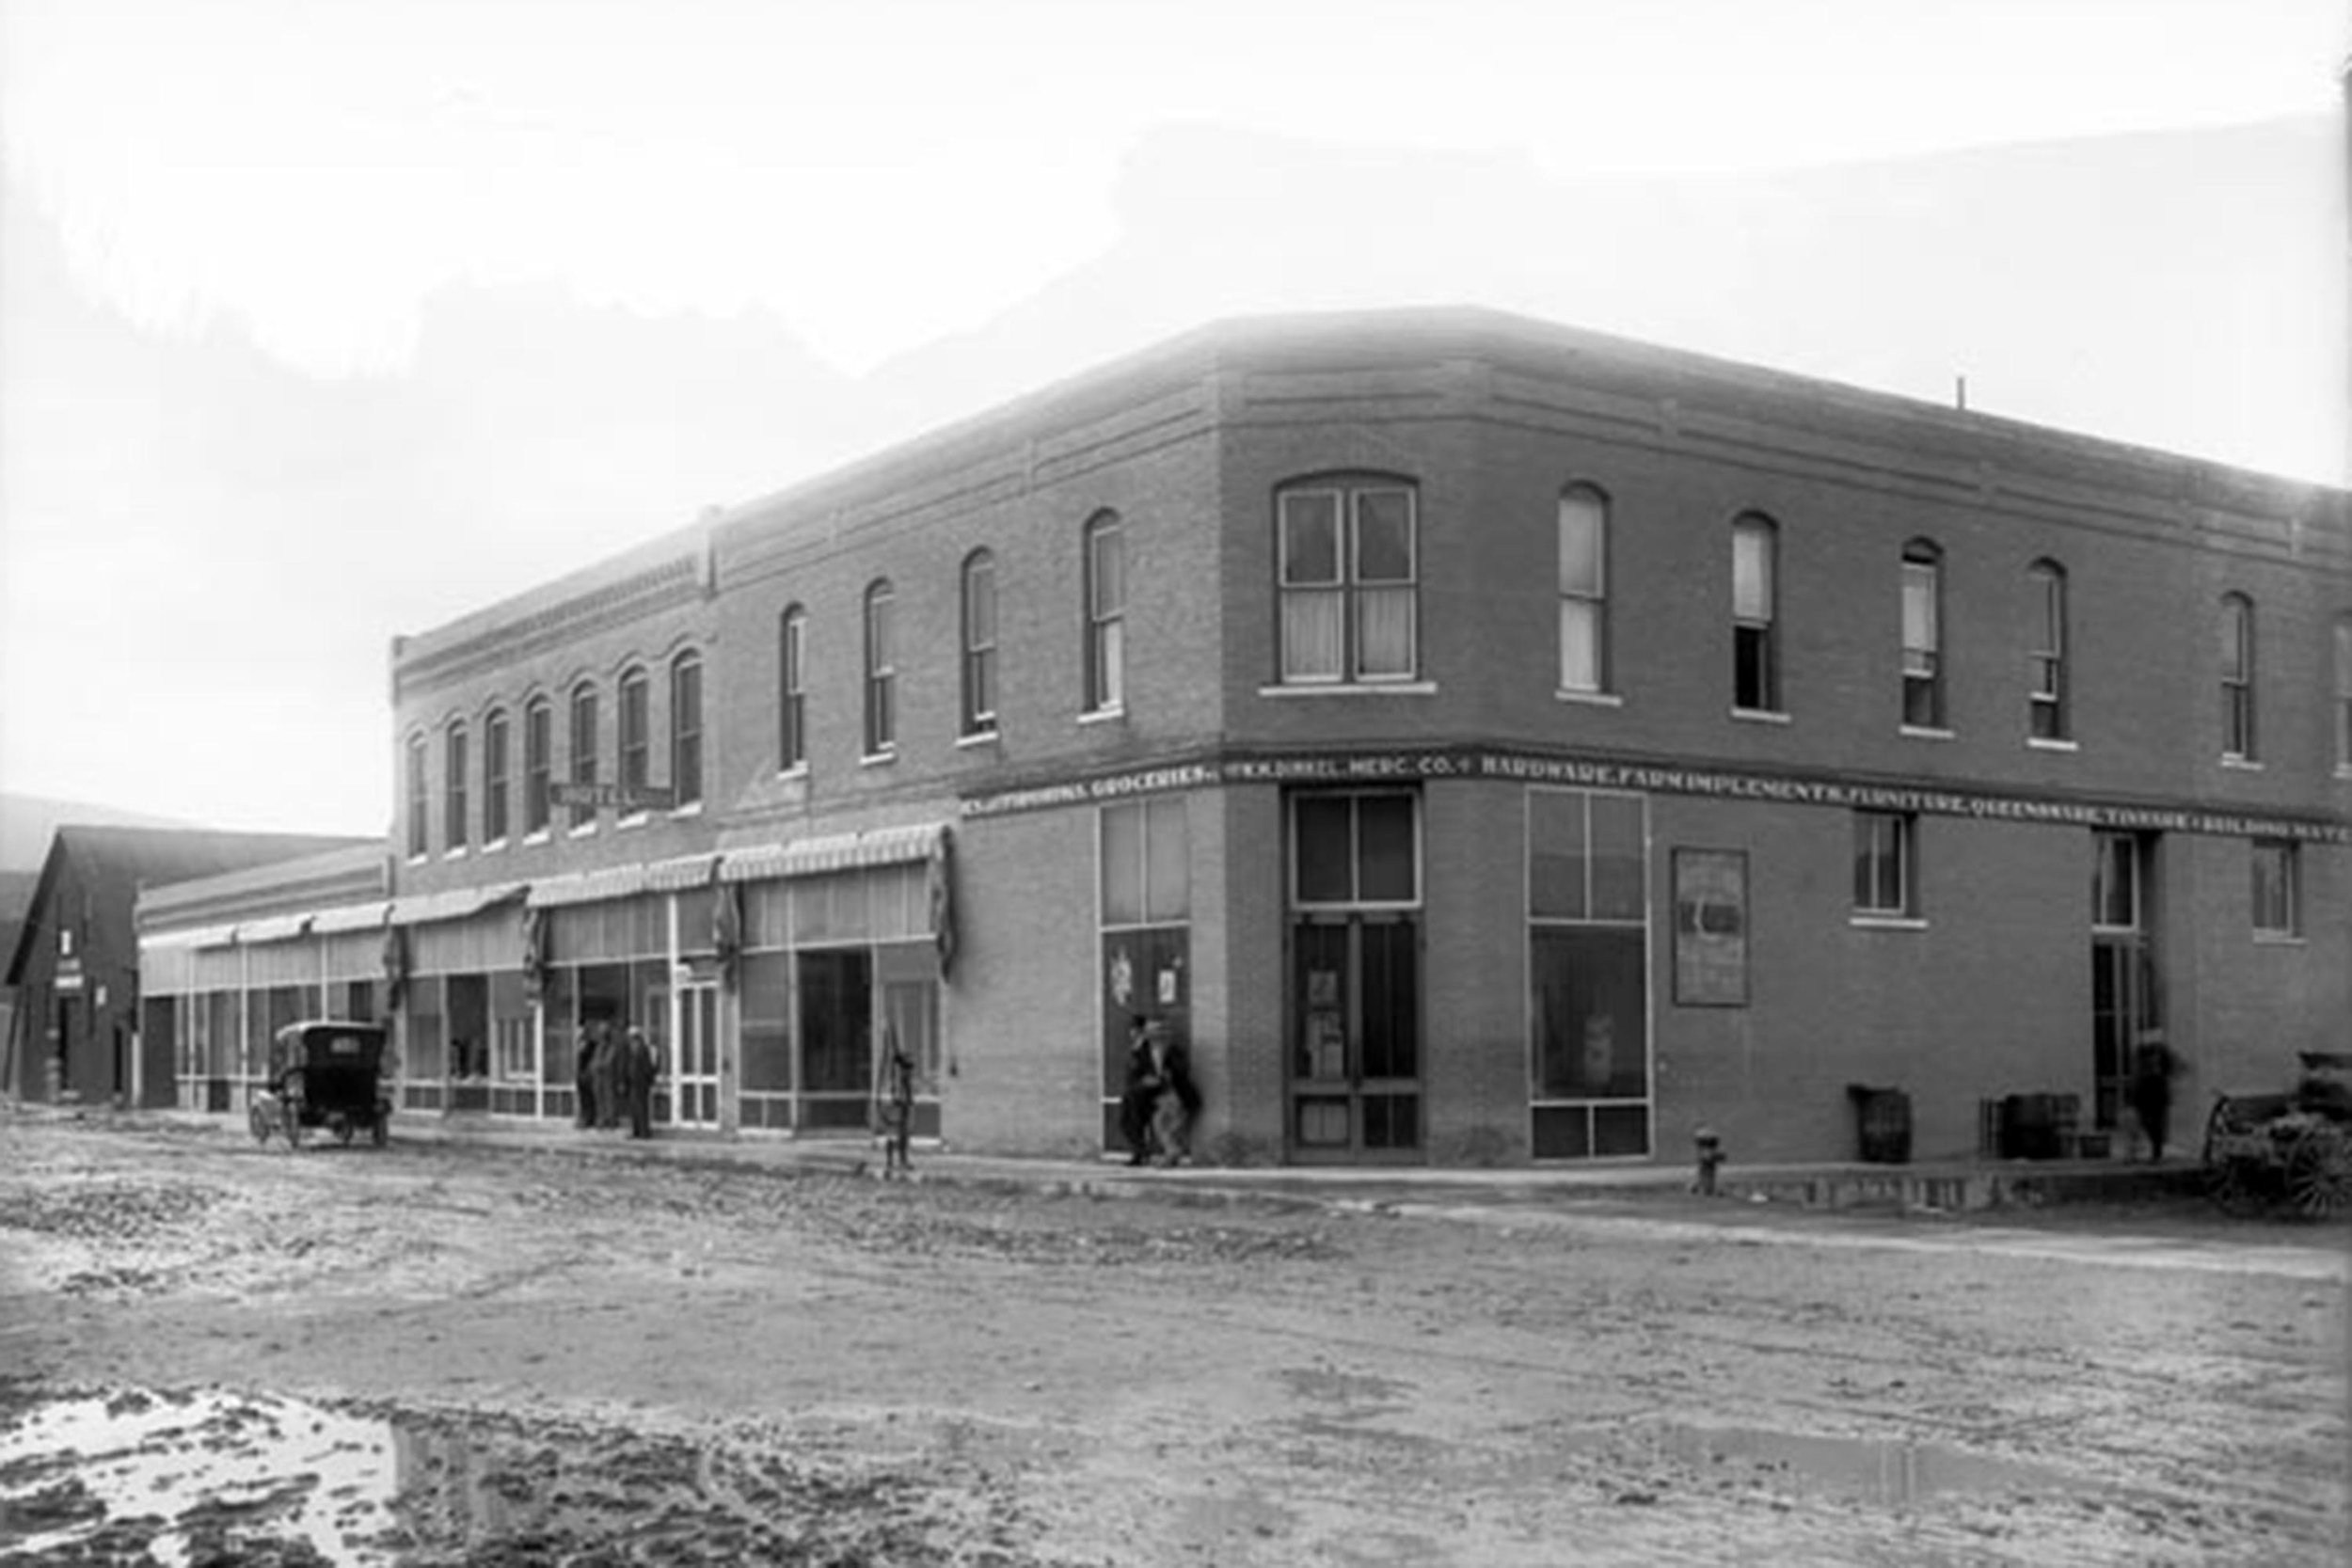 The Dinkel building was an important hub in Carbondale's early days. Photo courtesy of the Carbondale Historical Society